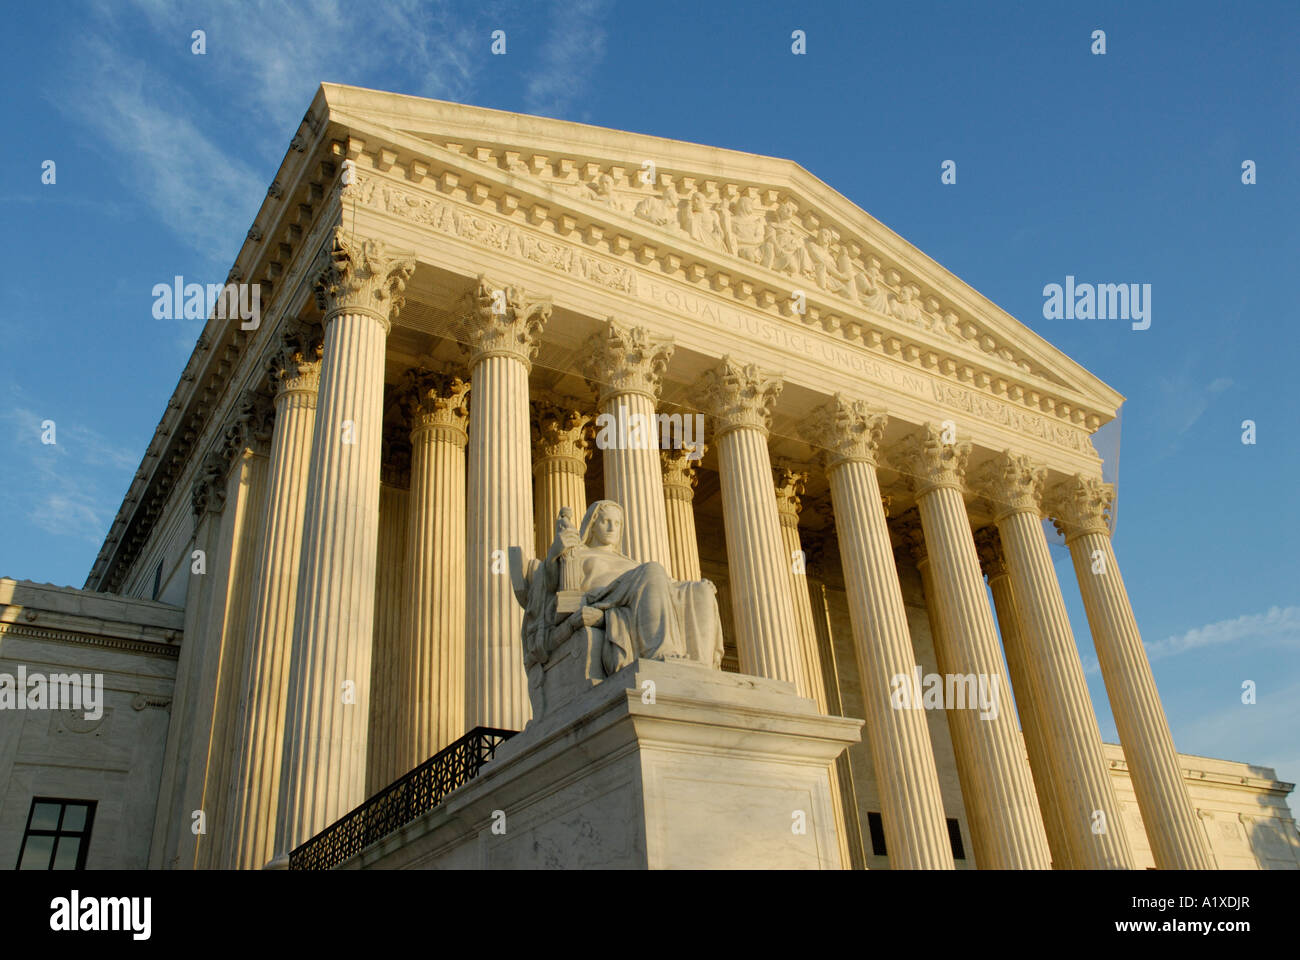 Contemplation of Justice statue, US United States Supreme Court Building - Stock Image